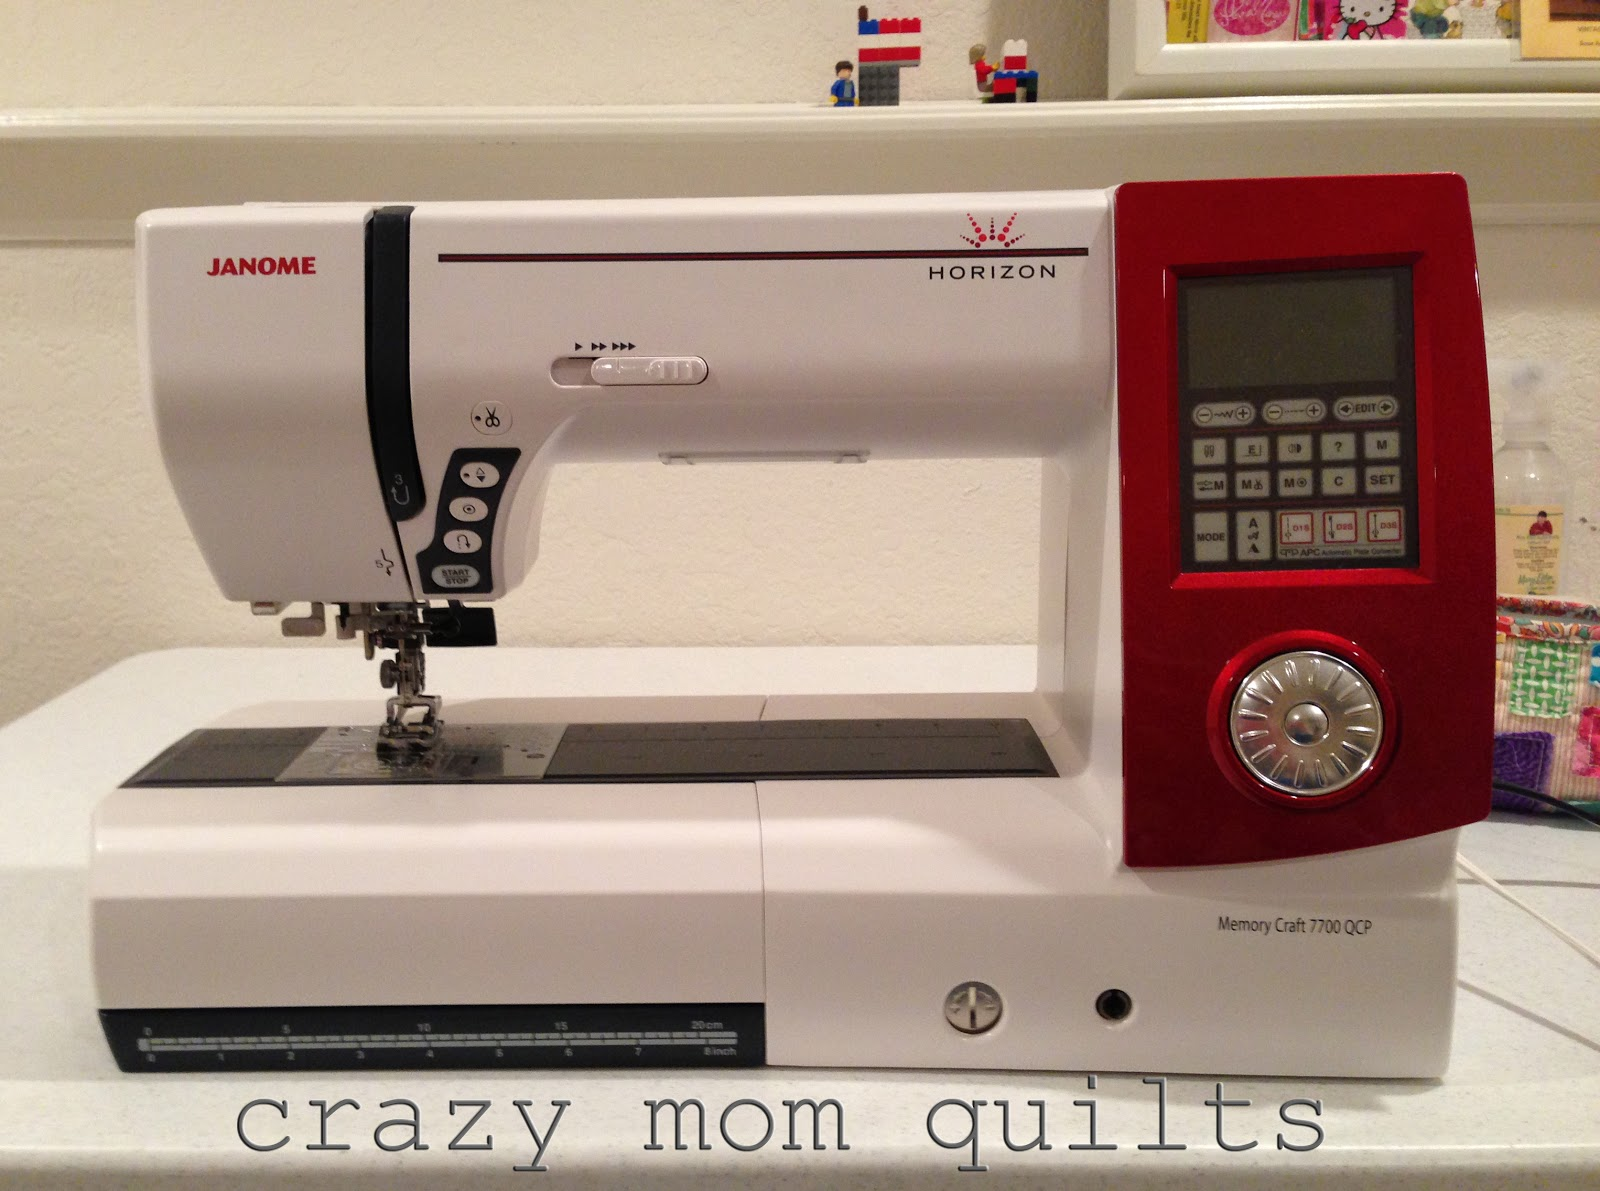 Janome horizon memory craft 8900 - Last November I Bought A Janome Horizon Memory Craft 7700 Qcp It Was Kind Of An Extravagant Purchase But I Broke Down And Bought It Anyway